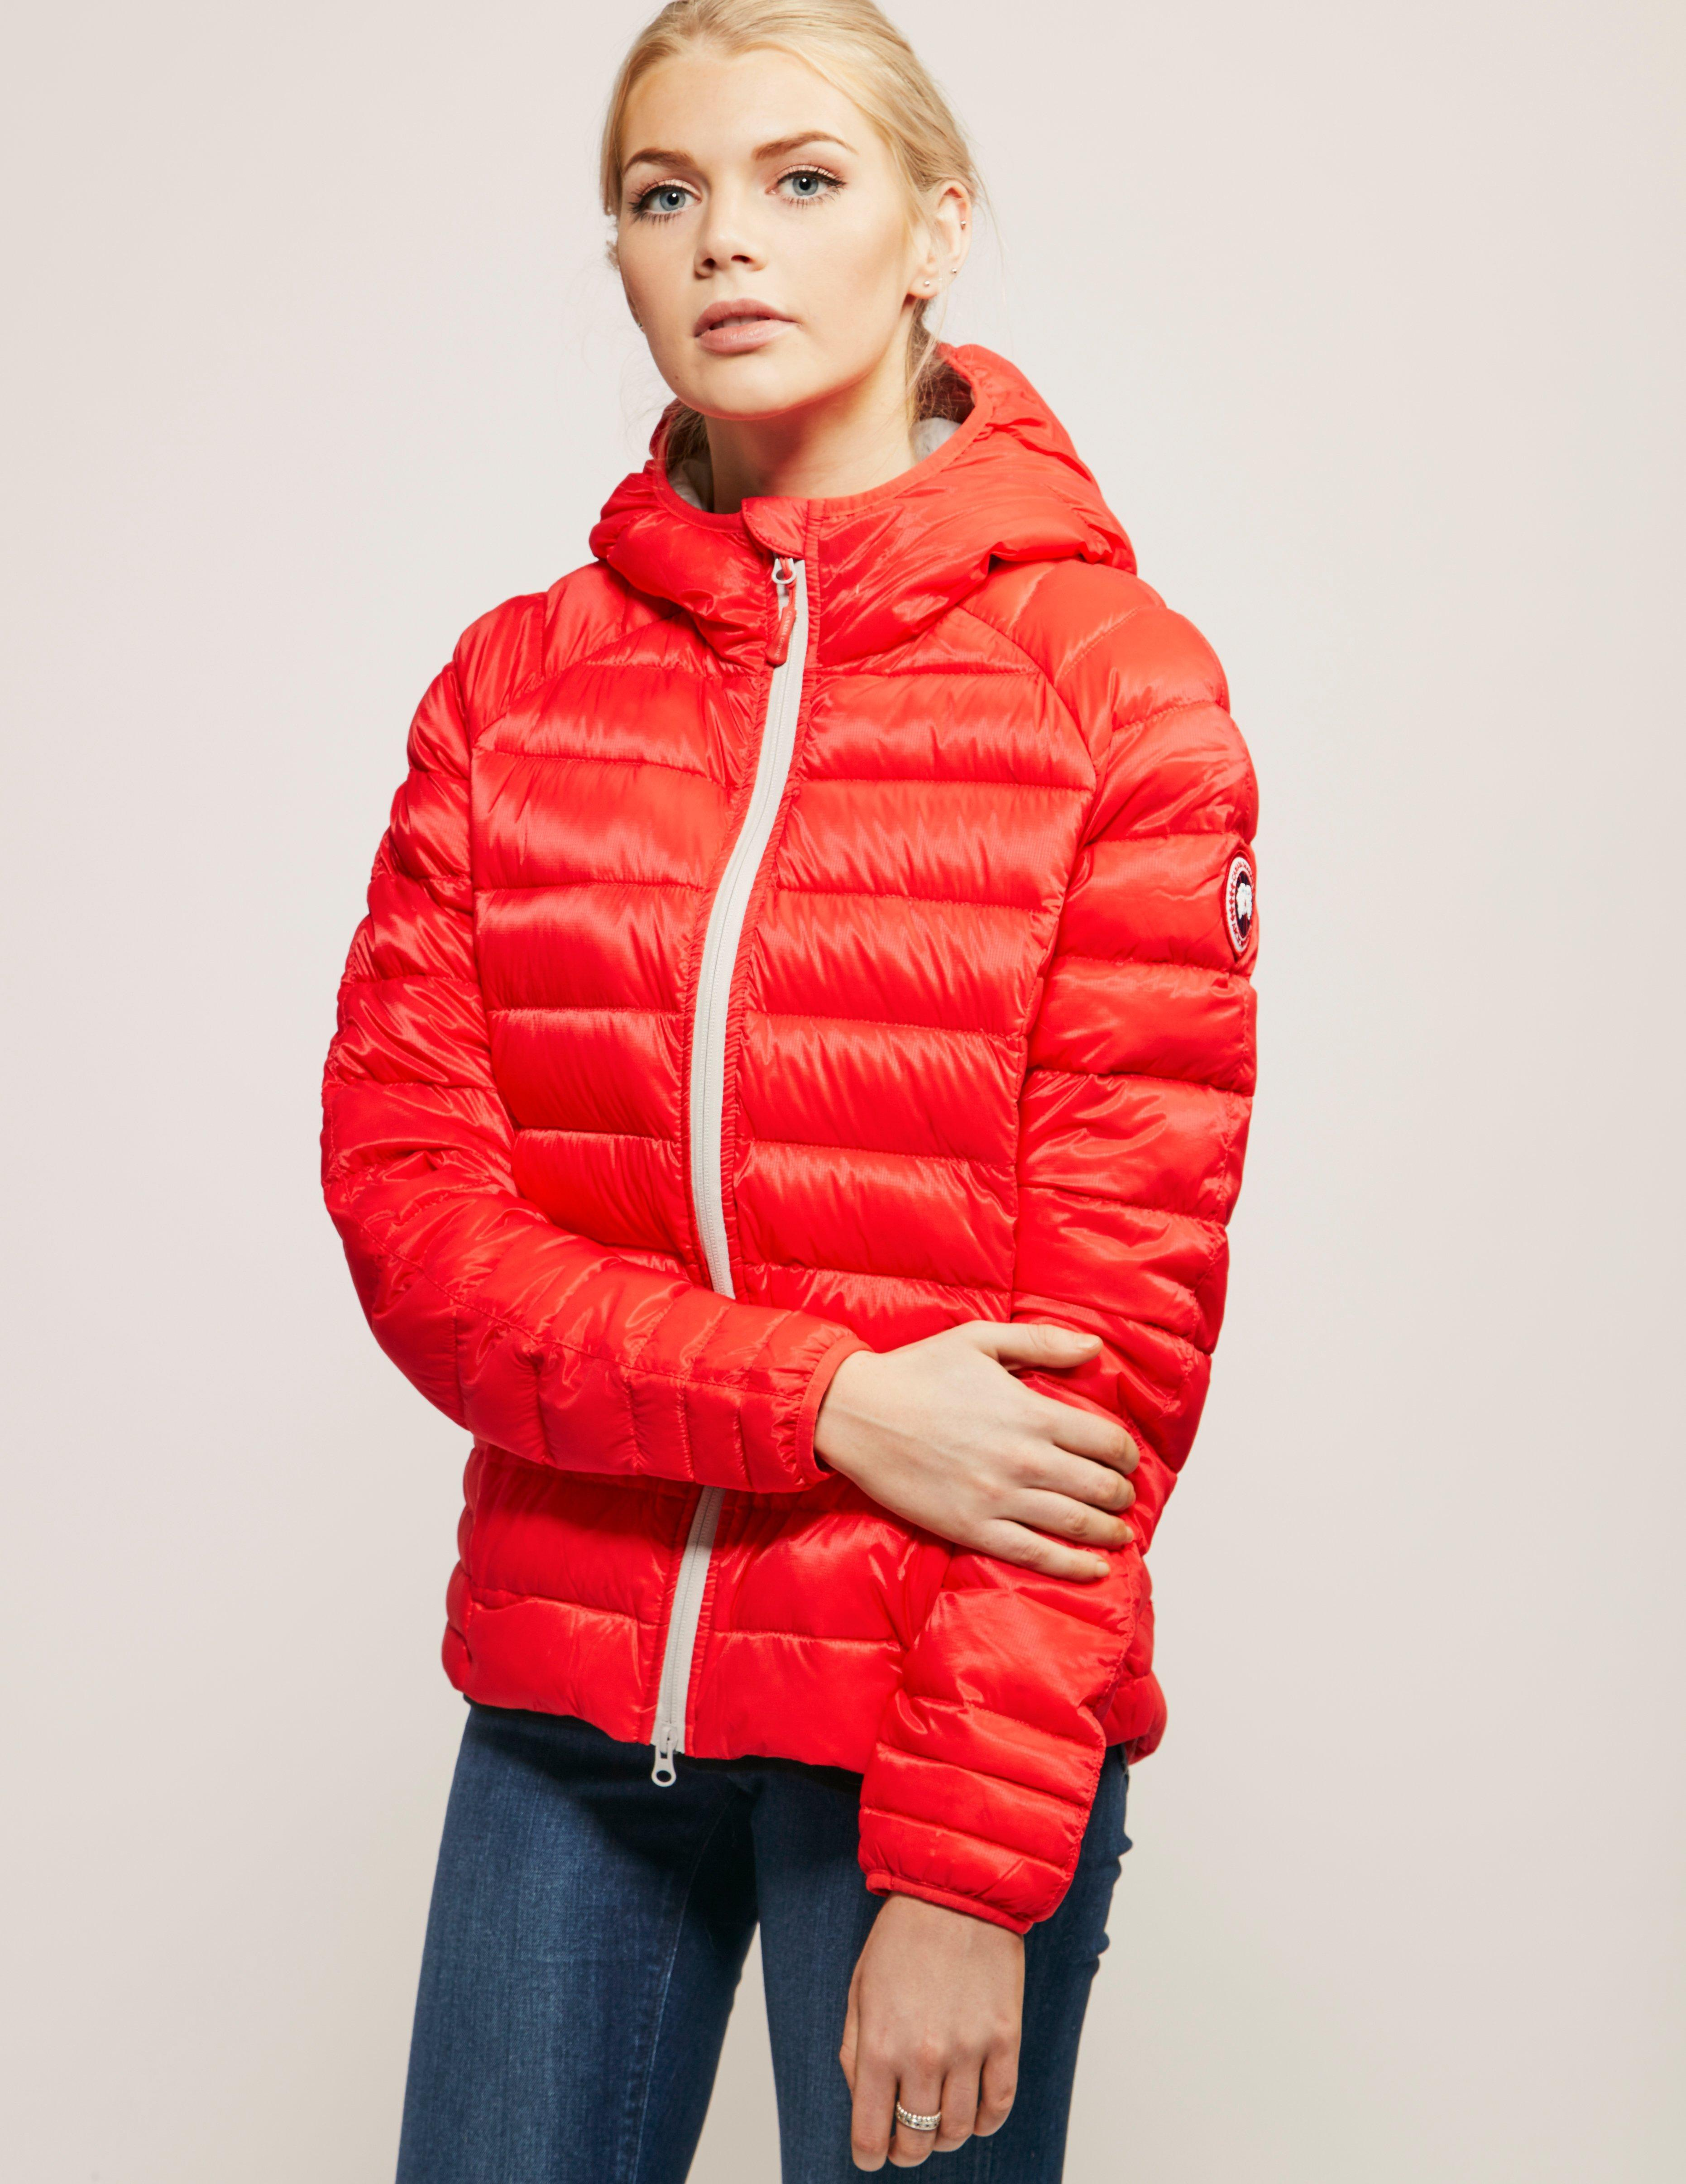 Lyst - Canada Goose Womens Brookvale Padded Hoody Jacket Coral Pink ... 172725948